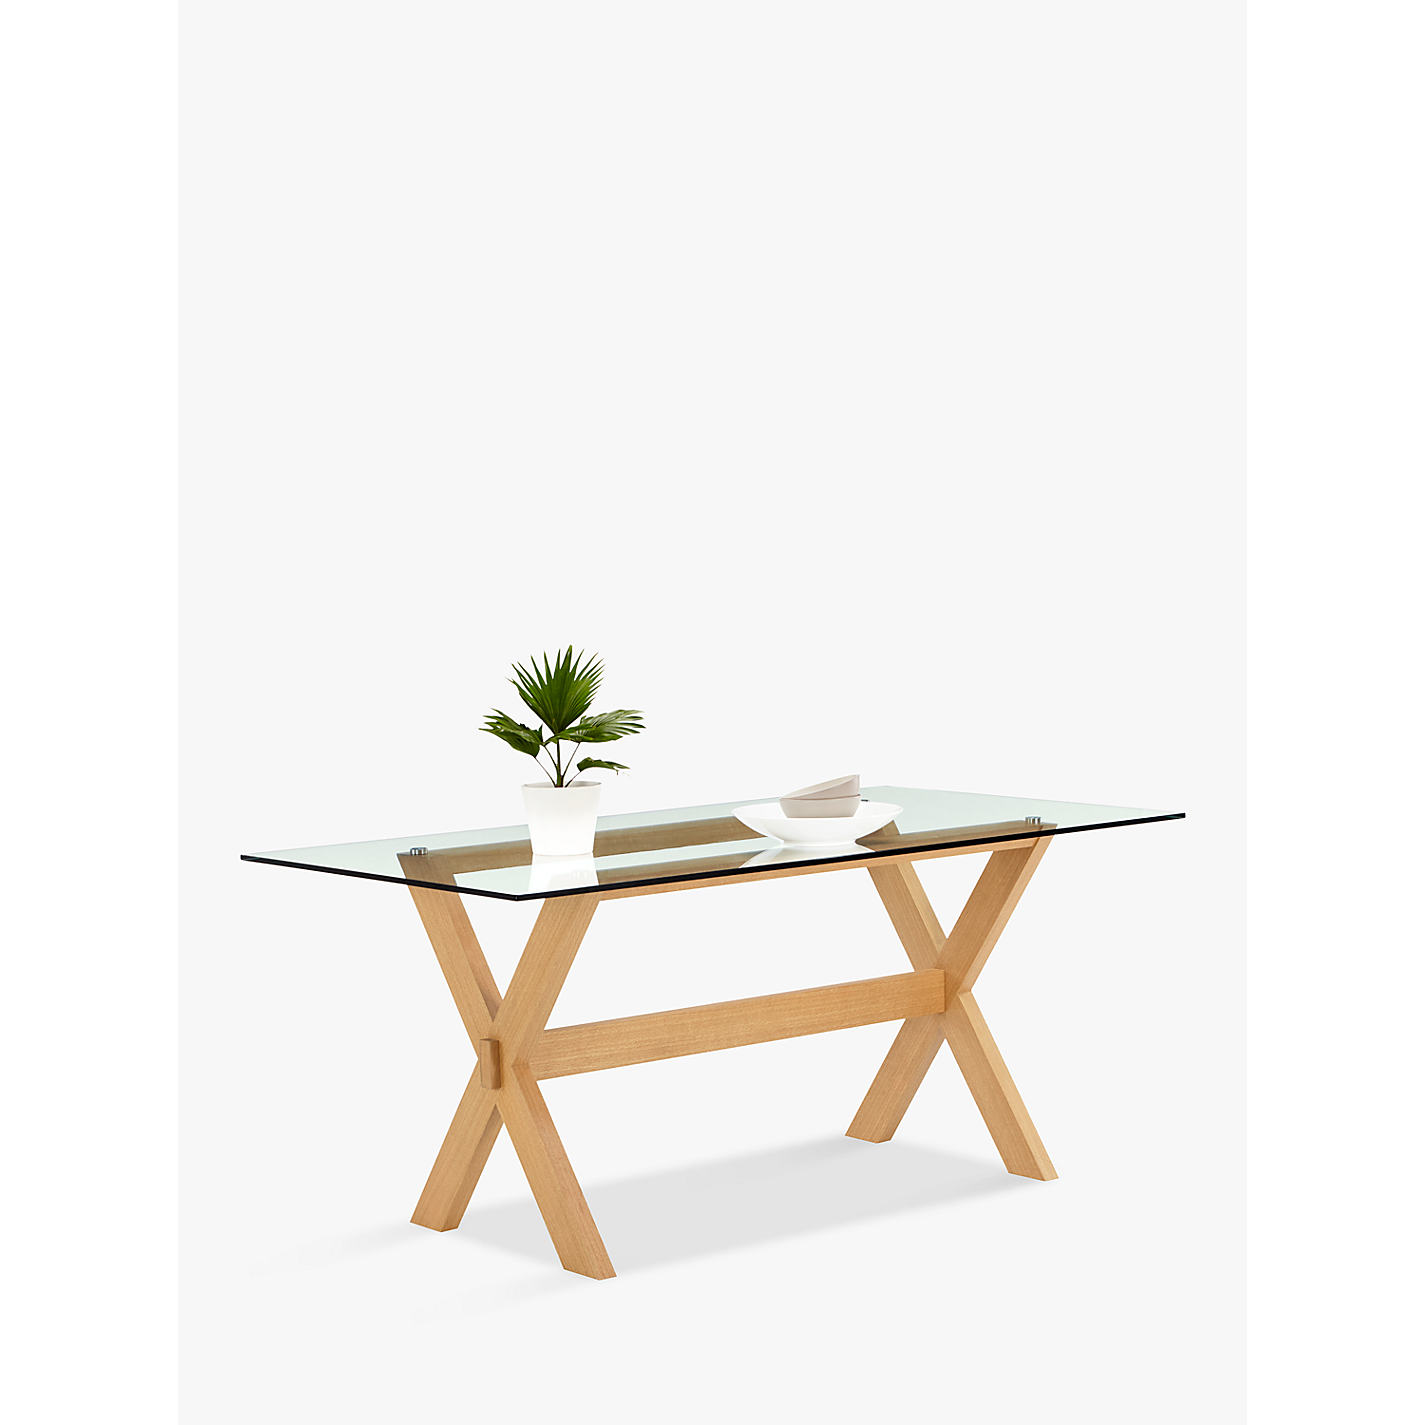 Buy john lewis lydia glass top dining table john lewis buy john lewis lydia glass top dining table online at johnlewis geotapseo Image collections